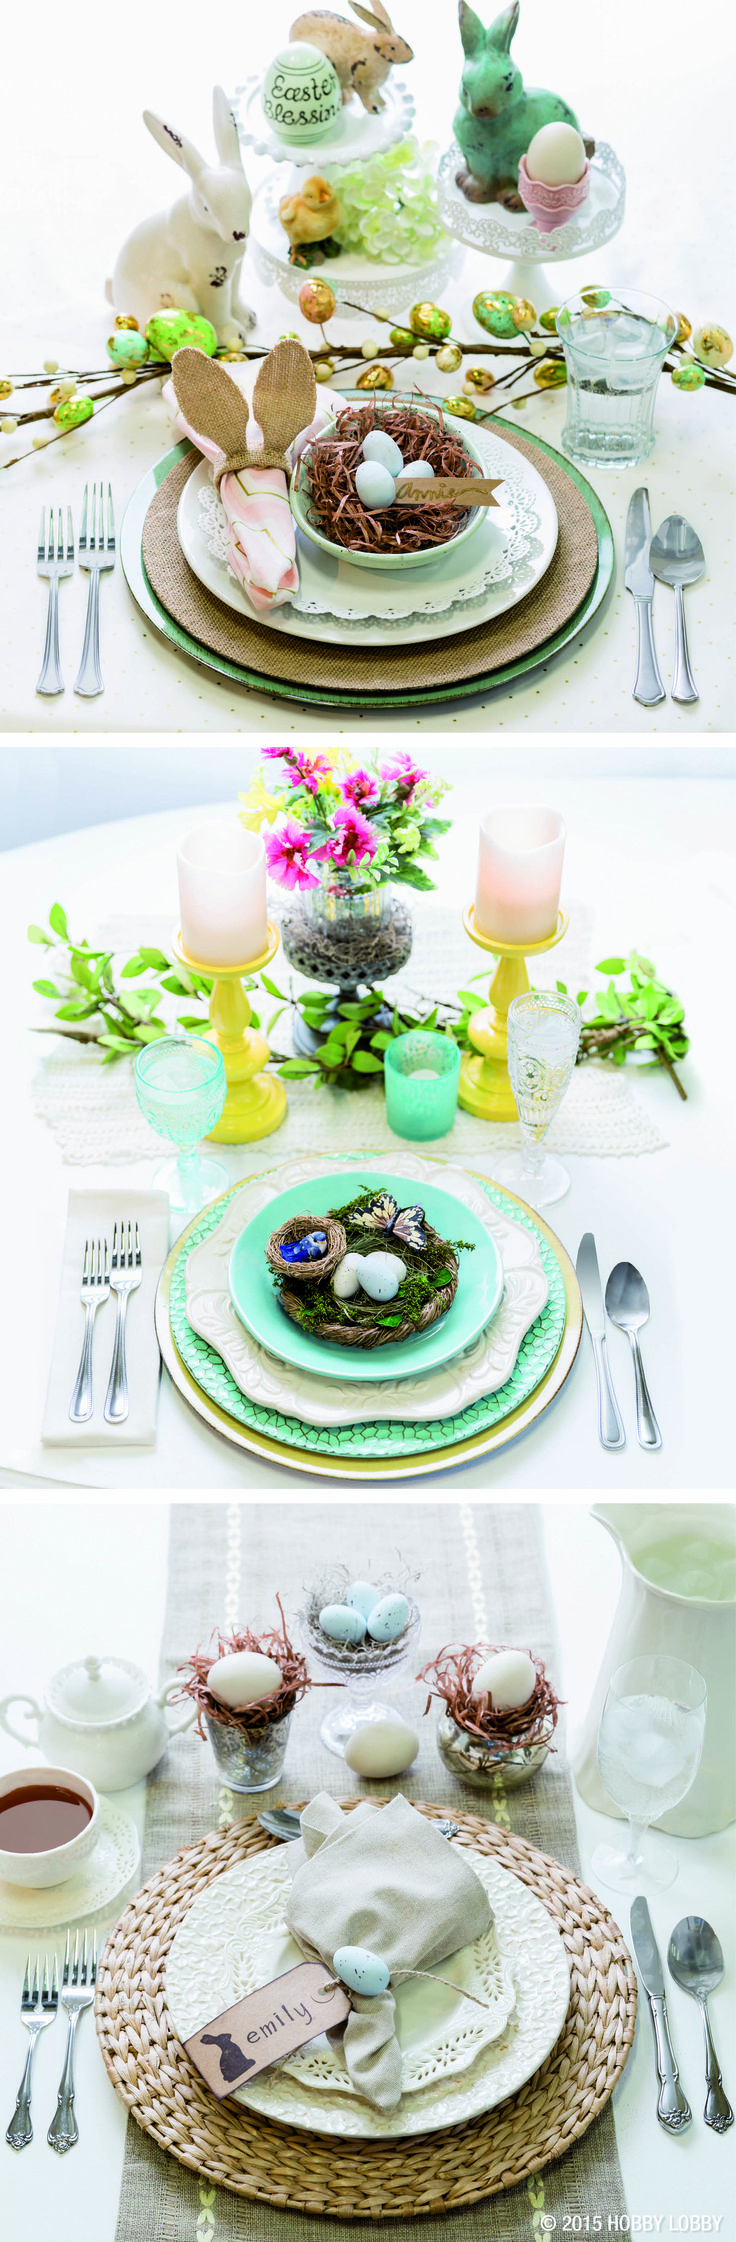 Need ideas for your Easter place settings? Here are three of our favorite springtime tablescapes.